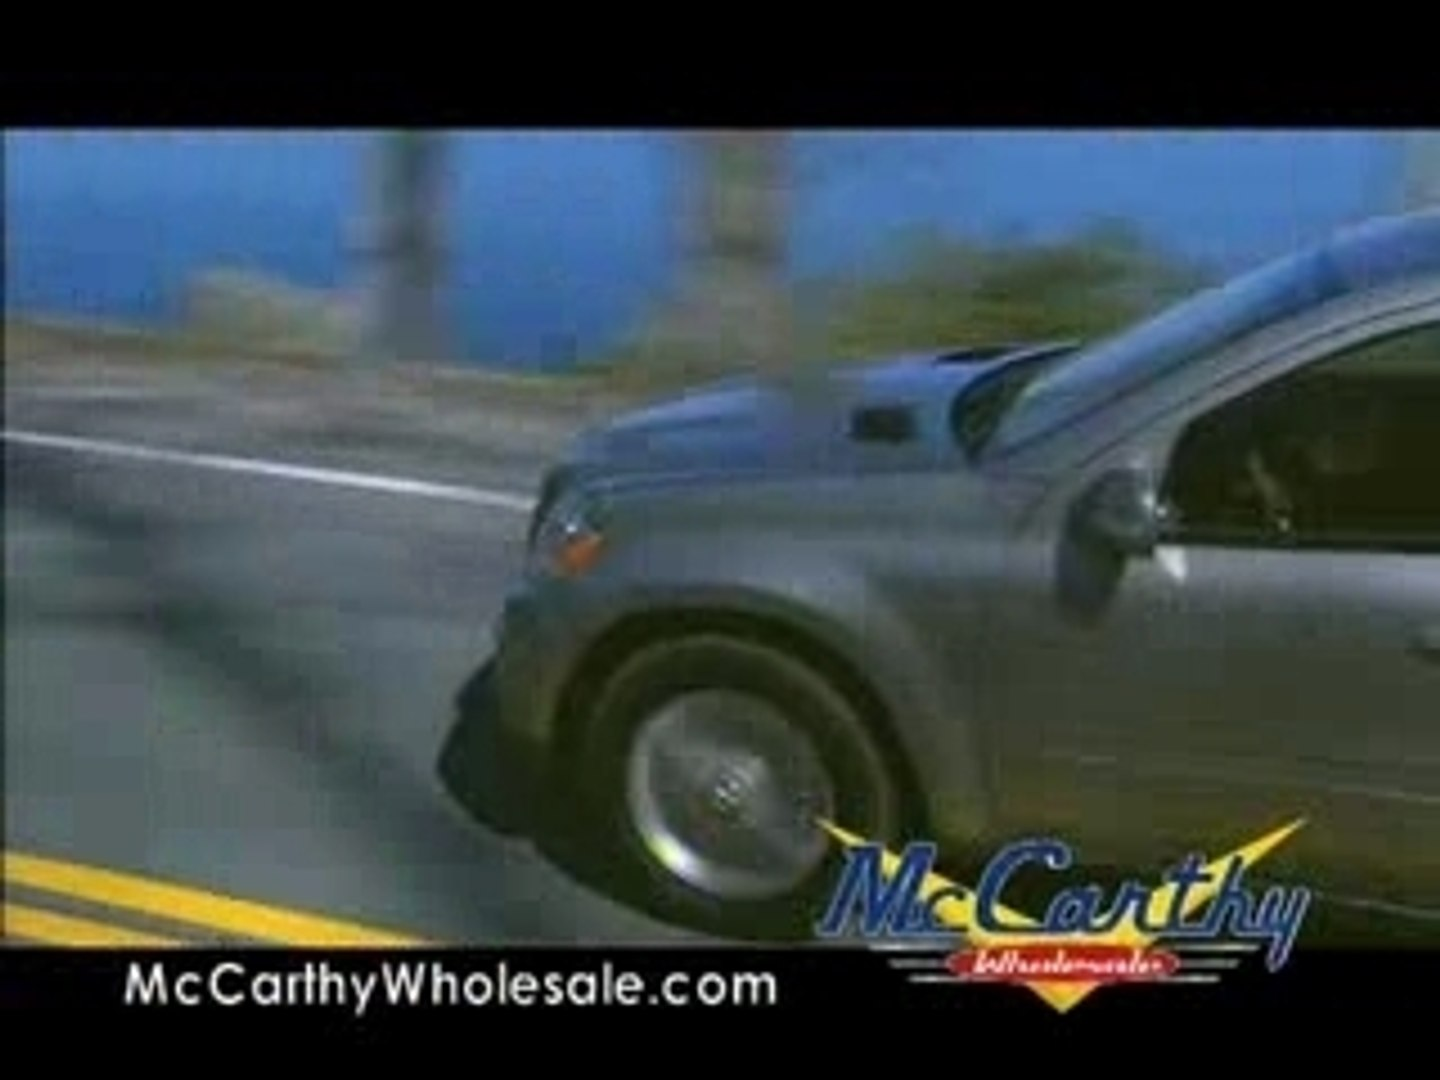 McCarthy Wholesale TV Commercial